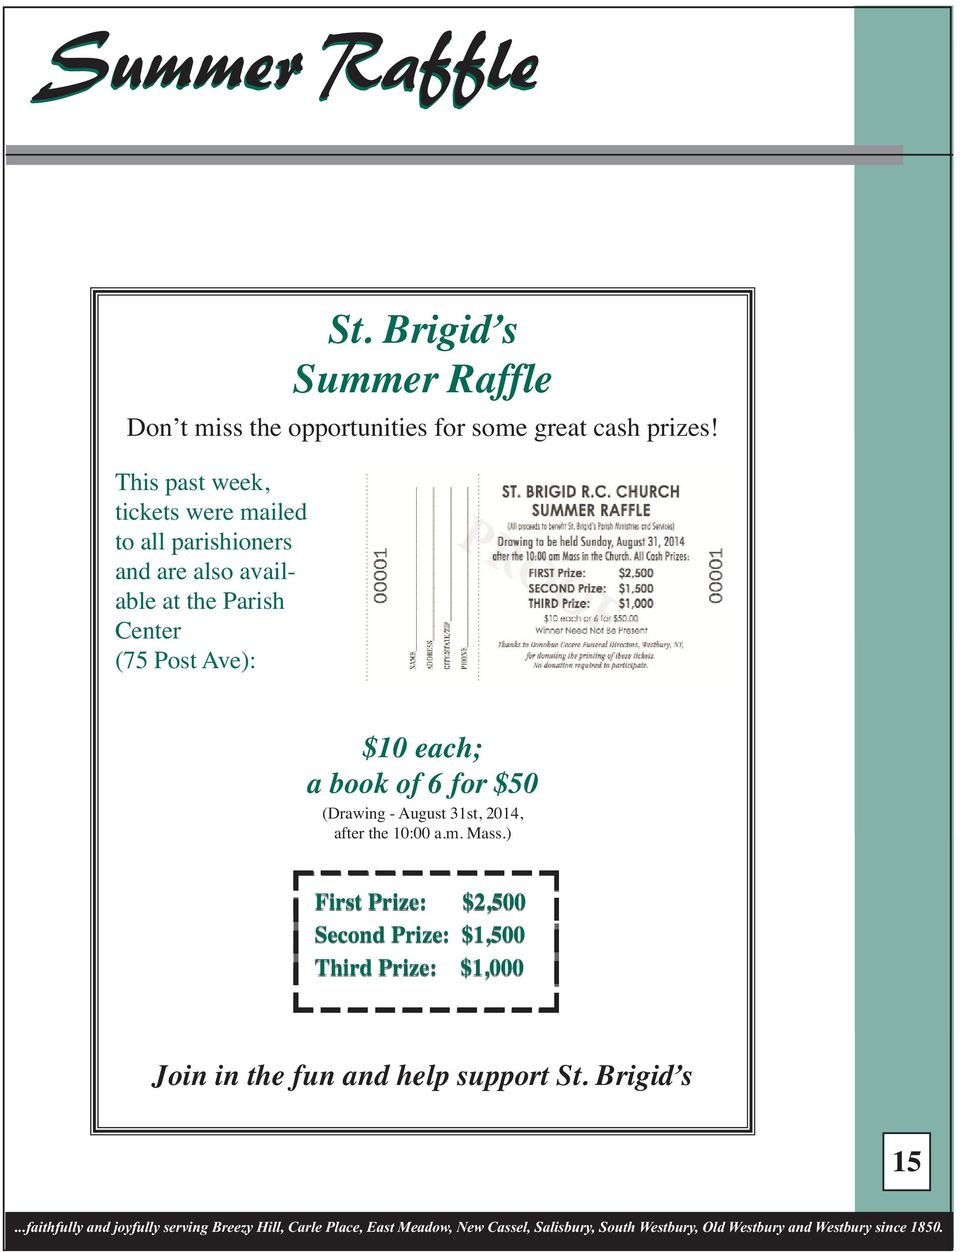 (75 Post Ave): $10 each; a book of 6 for $50 (Drawing - August 31st, 2014, after the 10:00 a.m. Mass.